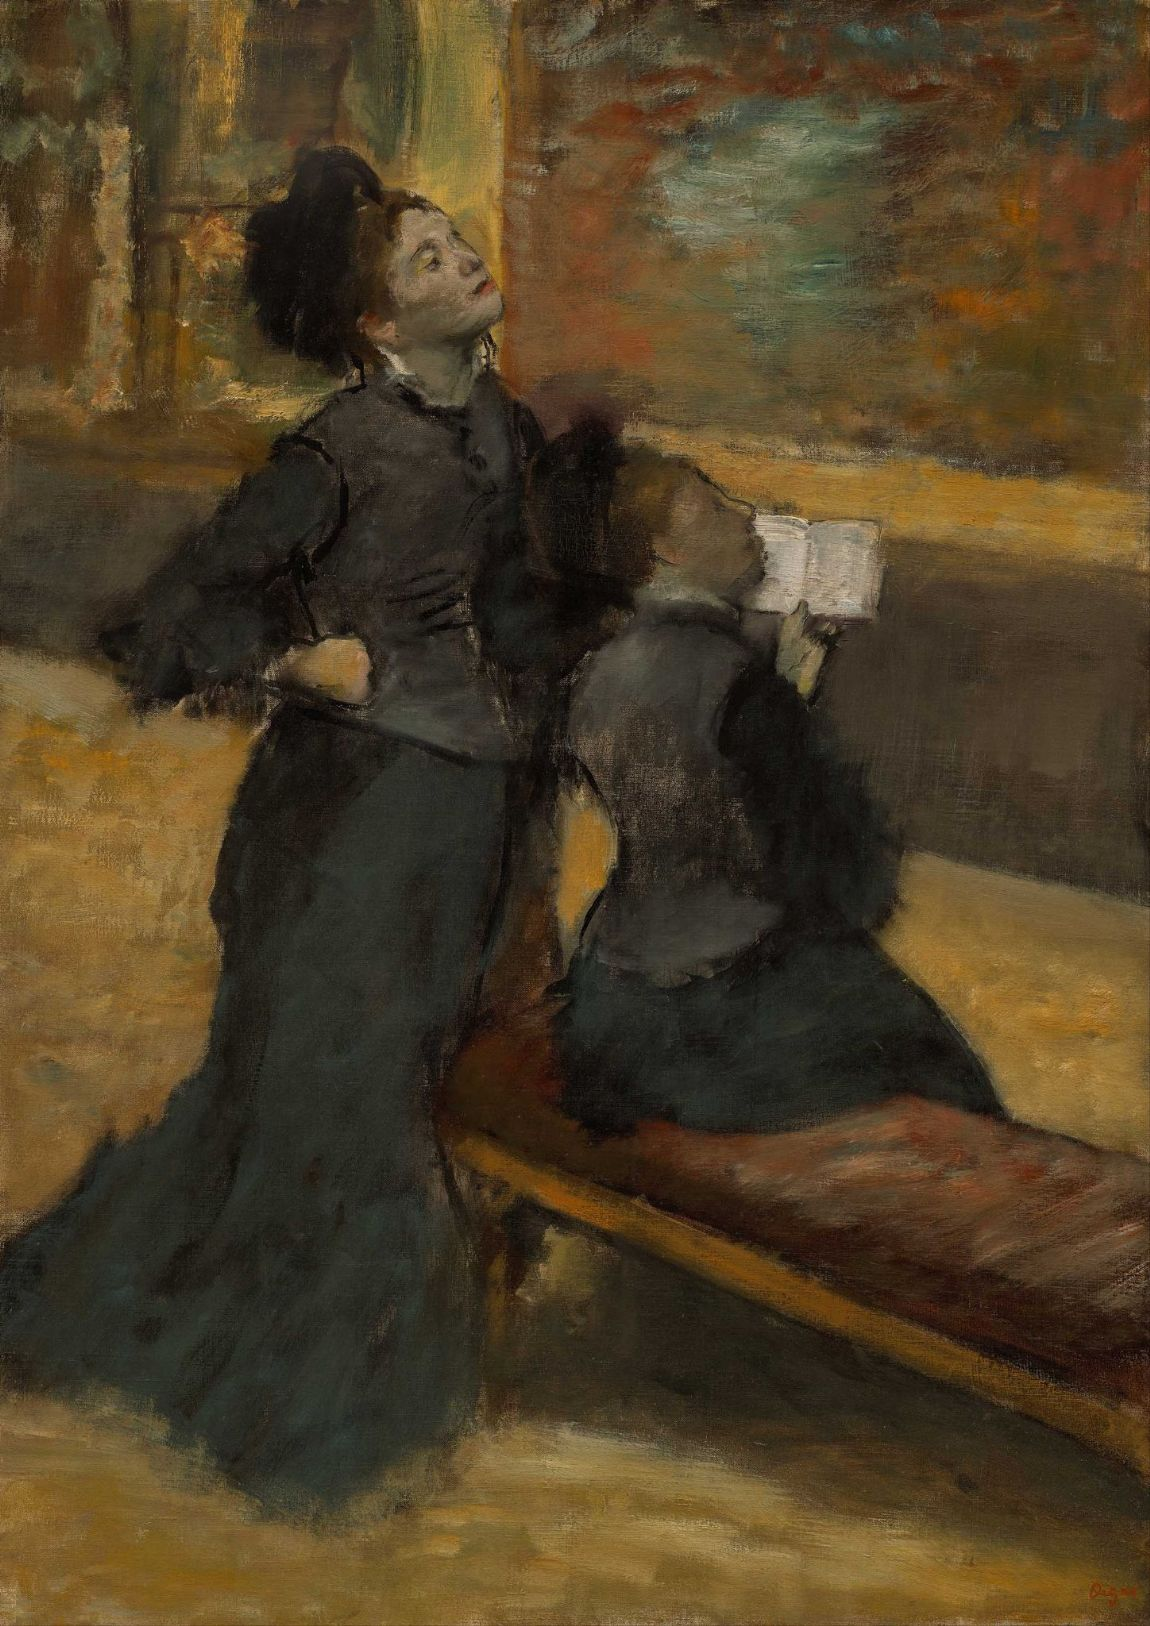 Degas, Edgar: Visit to a Museum. Fine Art Print/Poster. Sizes: A4/A3/A2/A1 (003777)